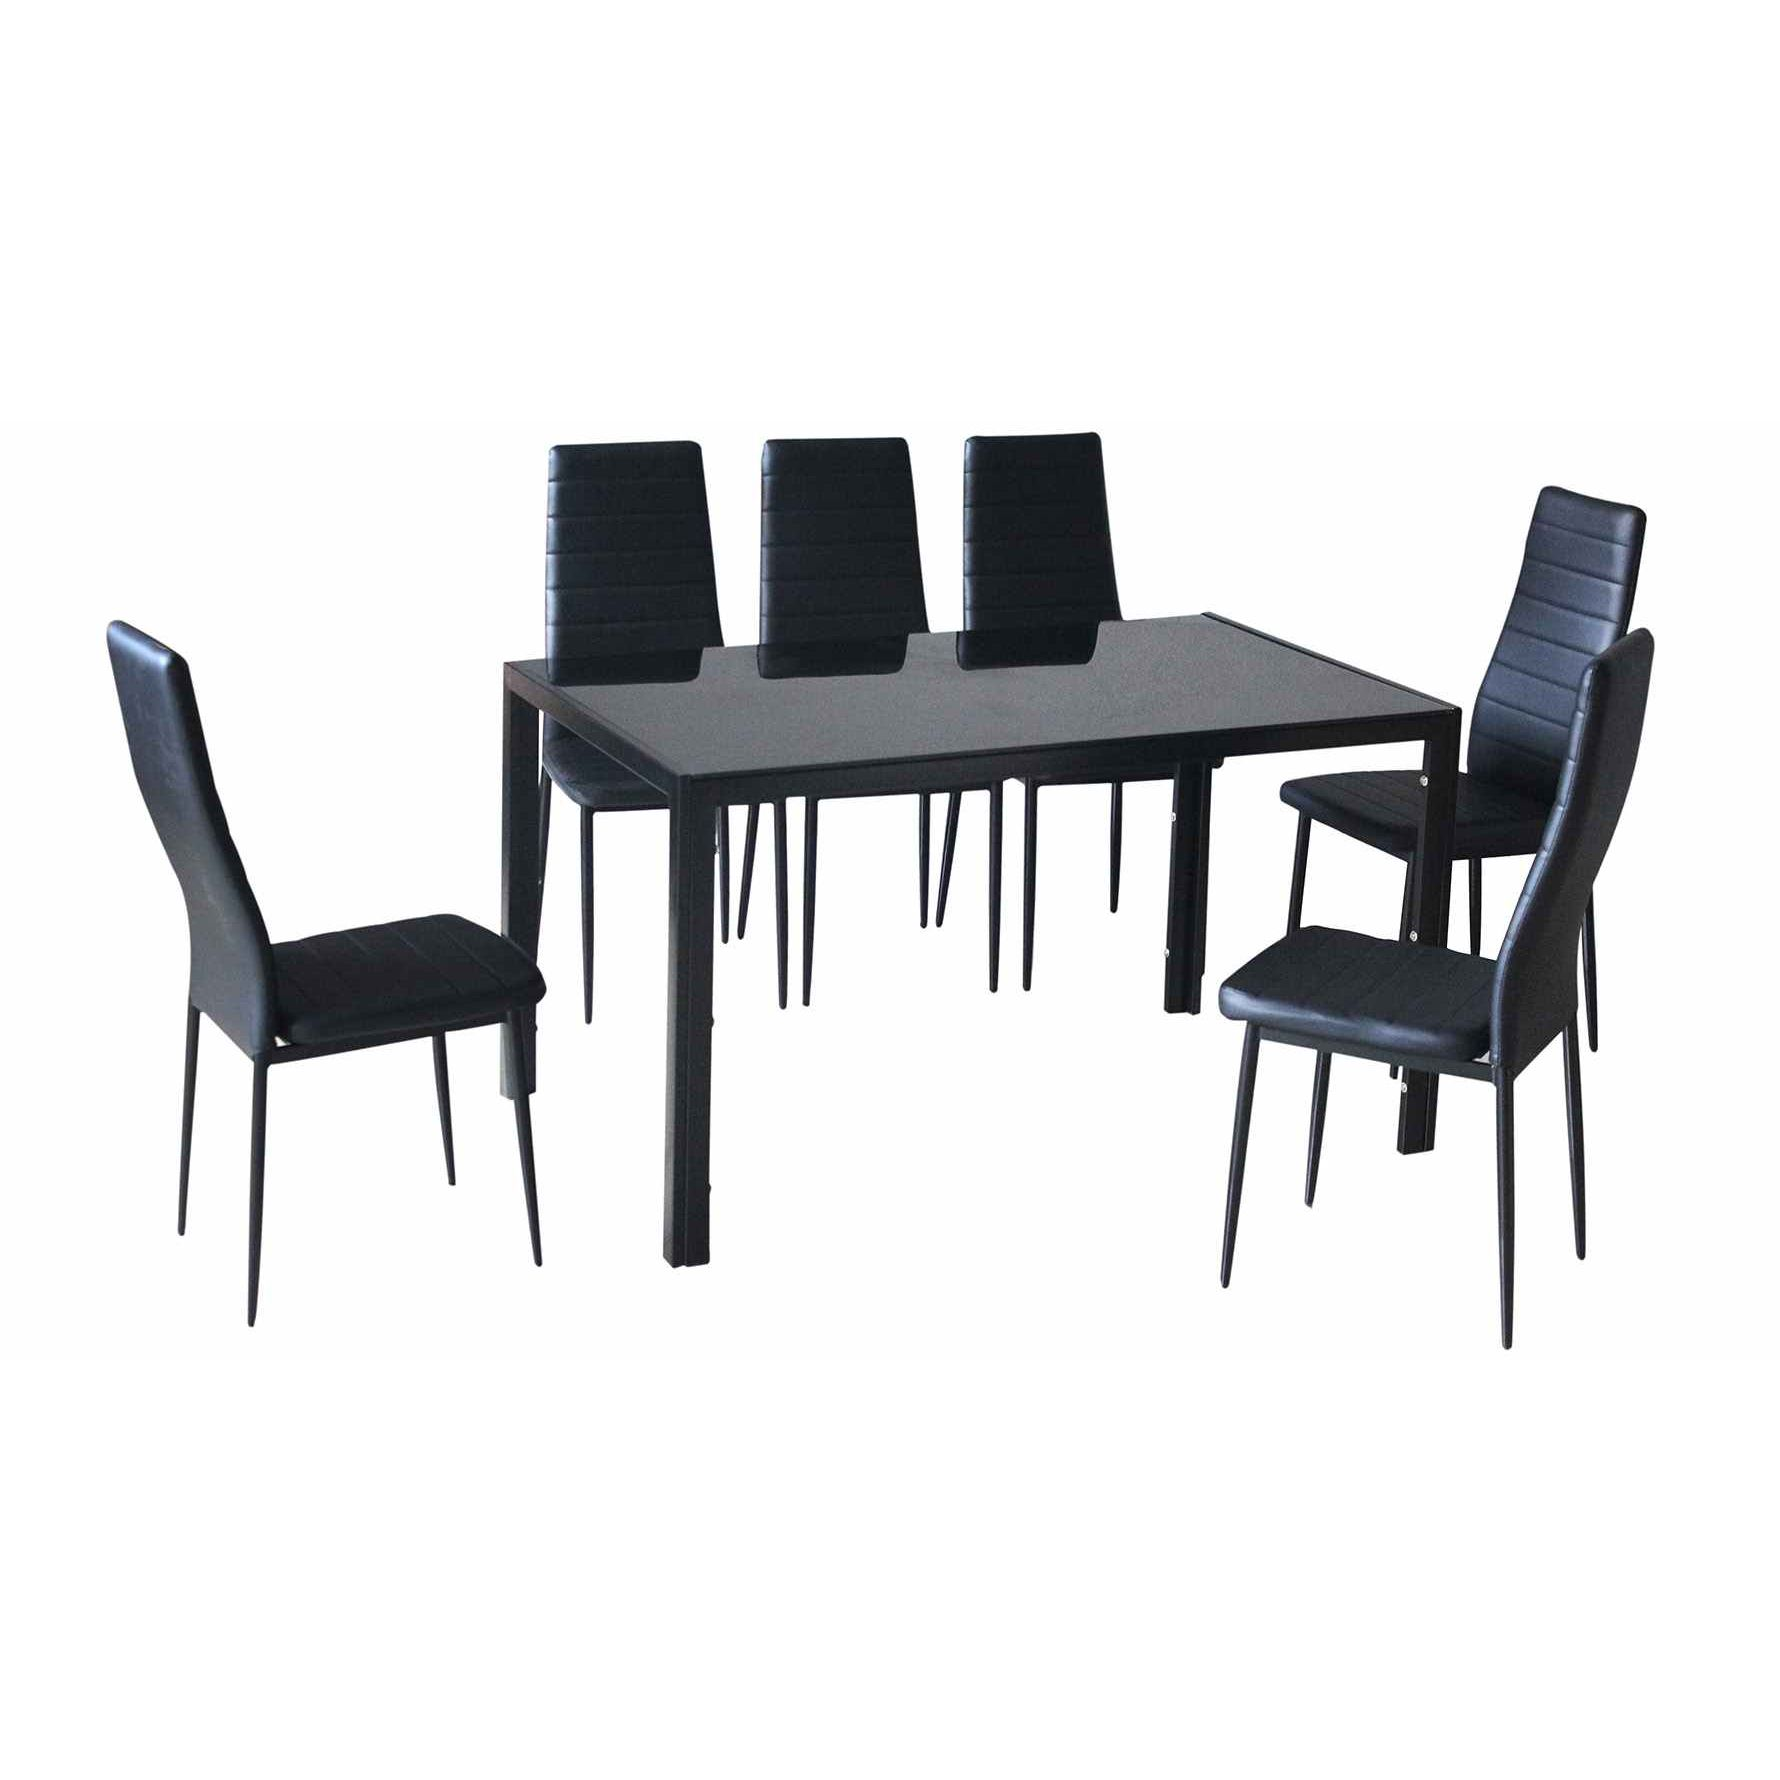 deco in paris table 6 chaises noir malia inconnu. Black Bedroom Furniture Sets. Home Design Ideas